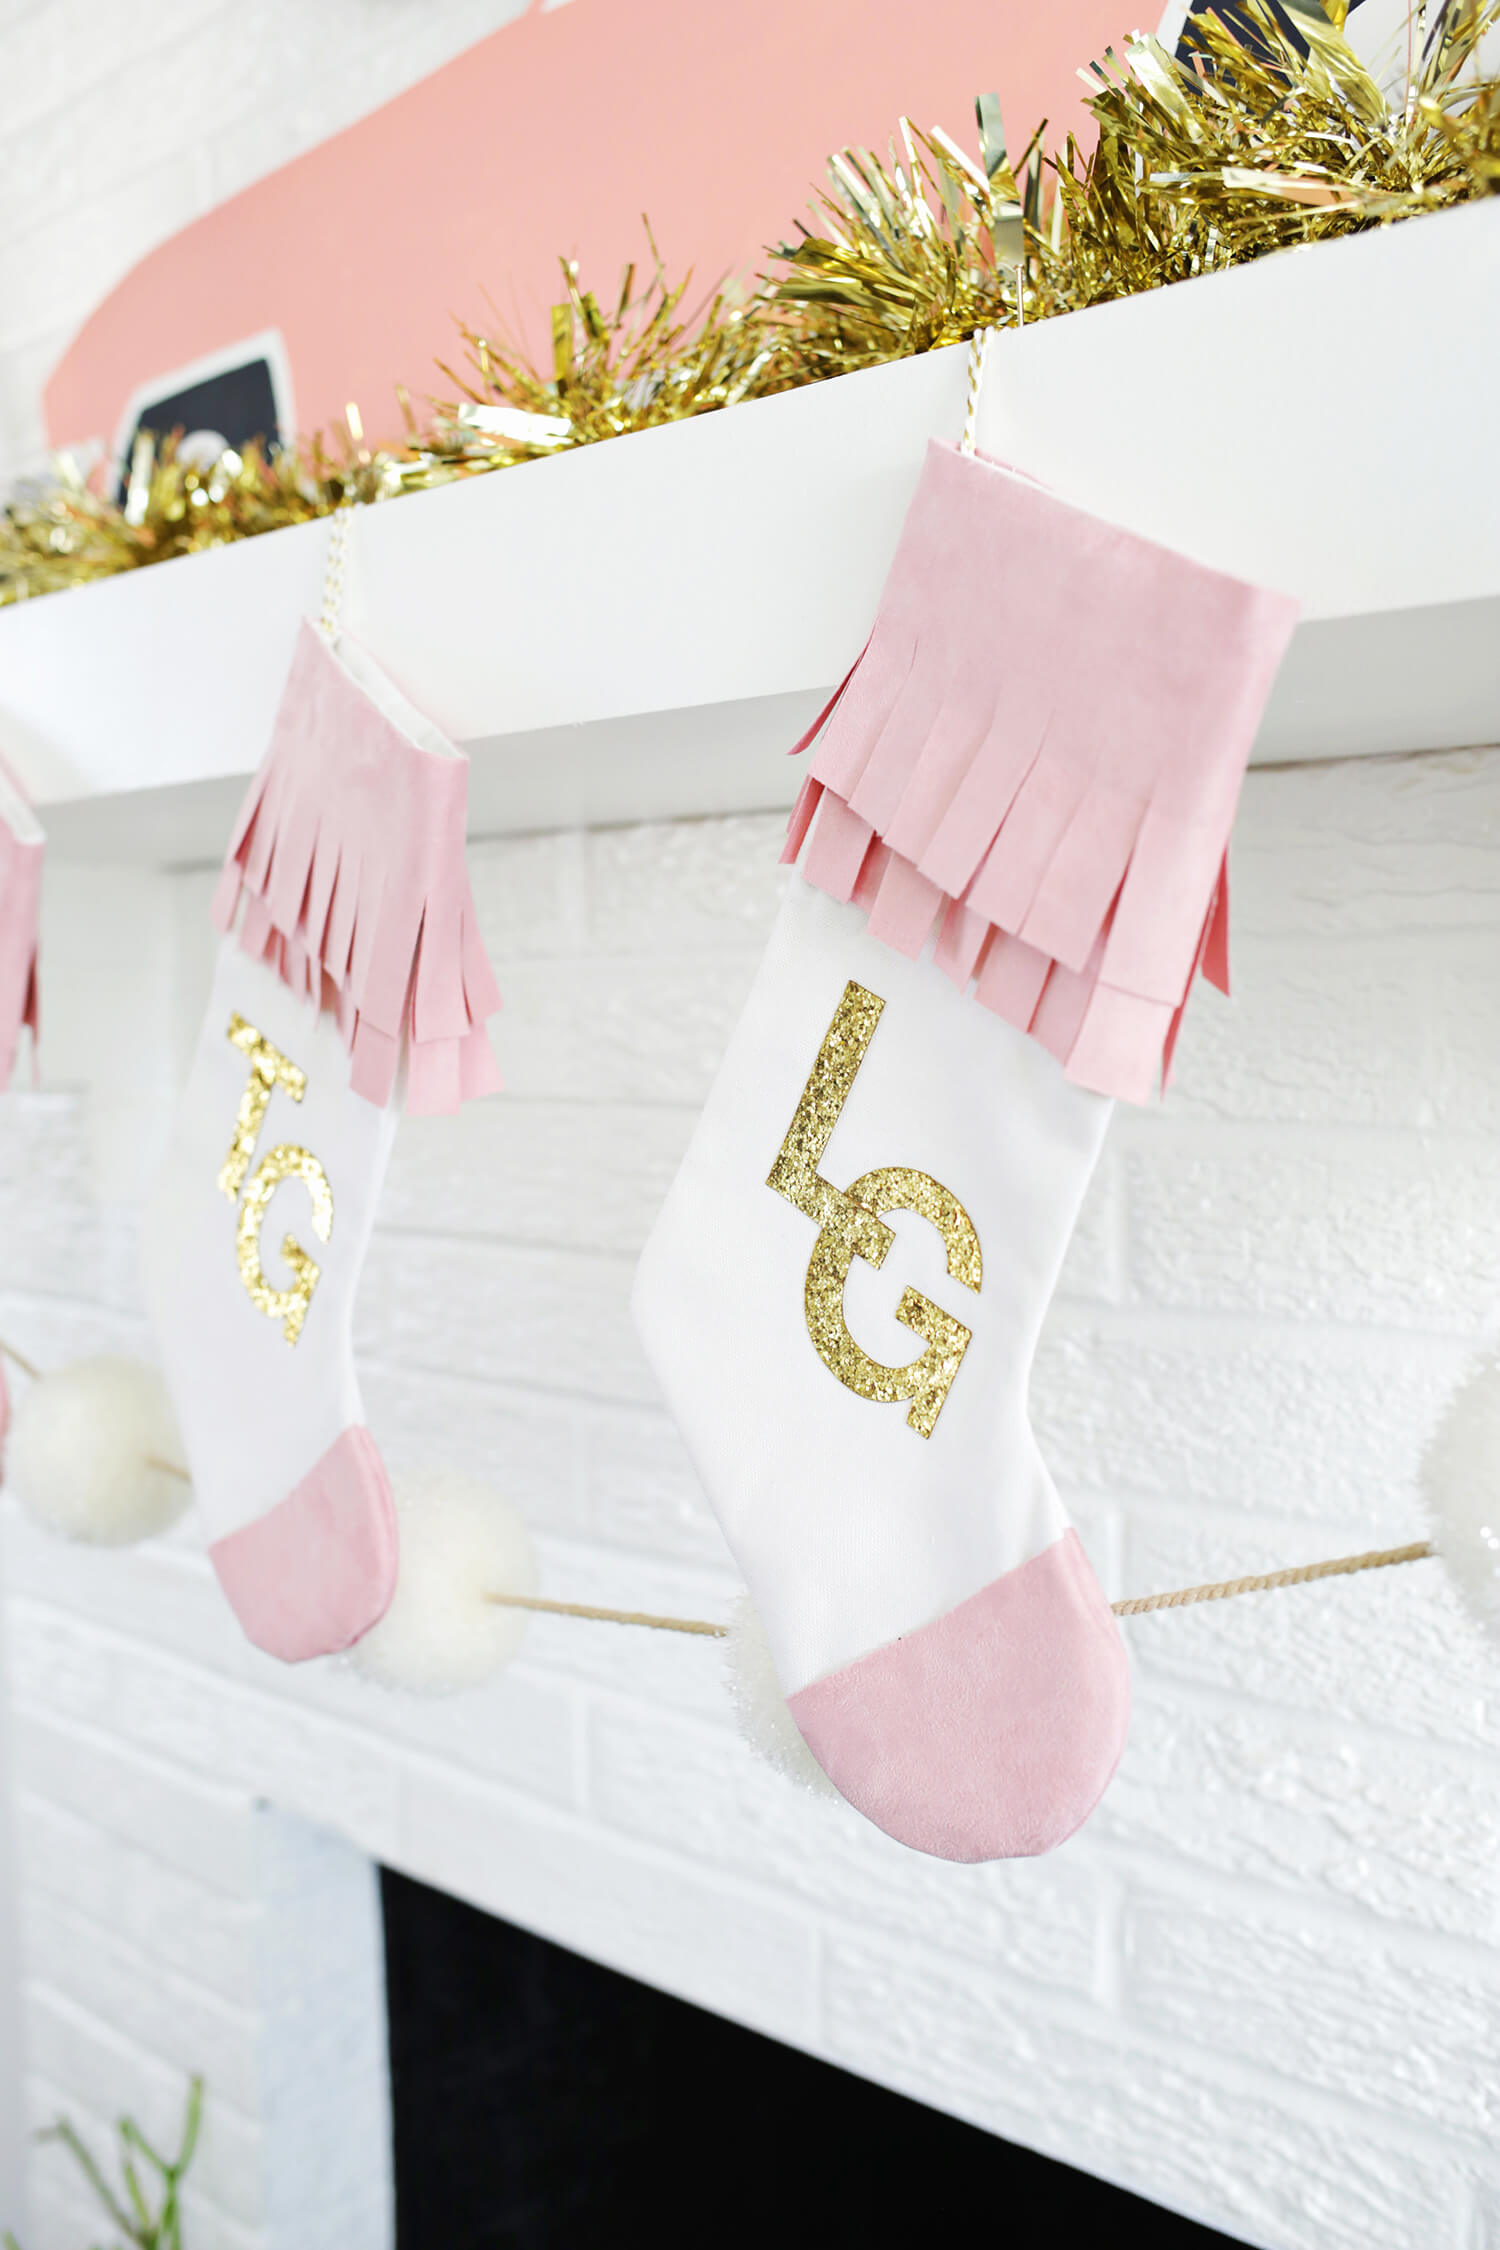 DIY stockings with faux suede trim